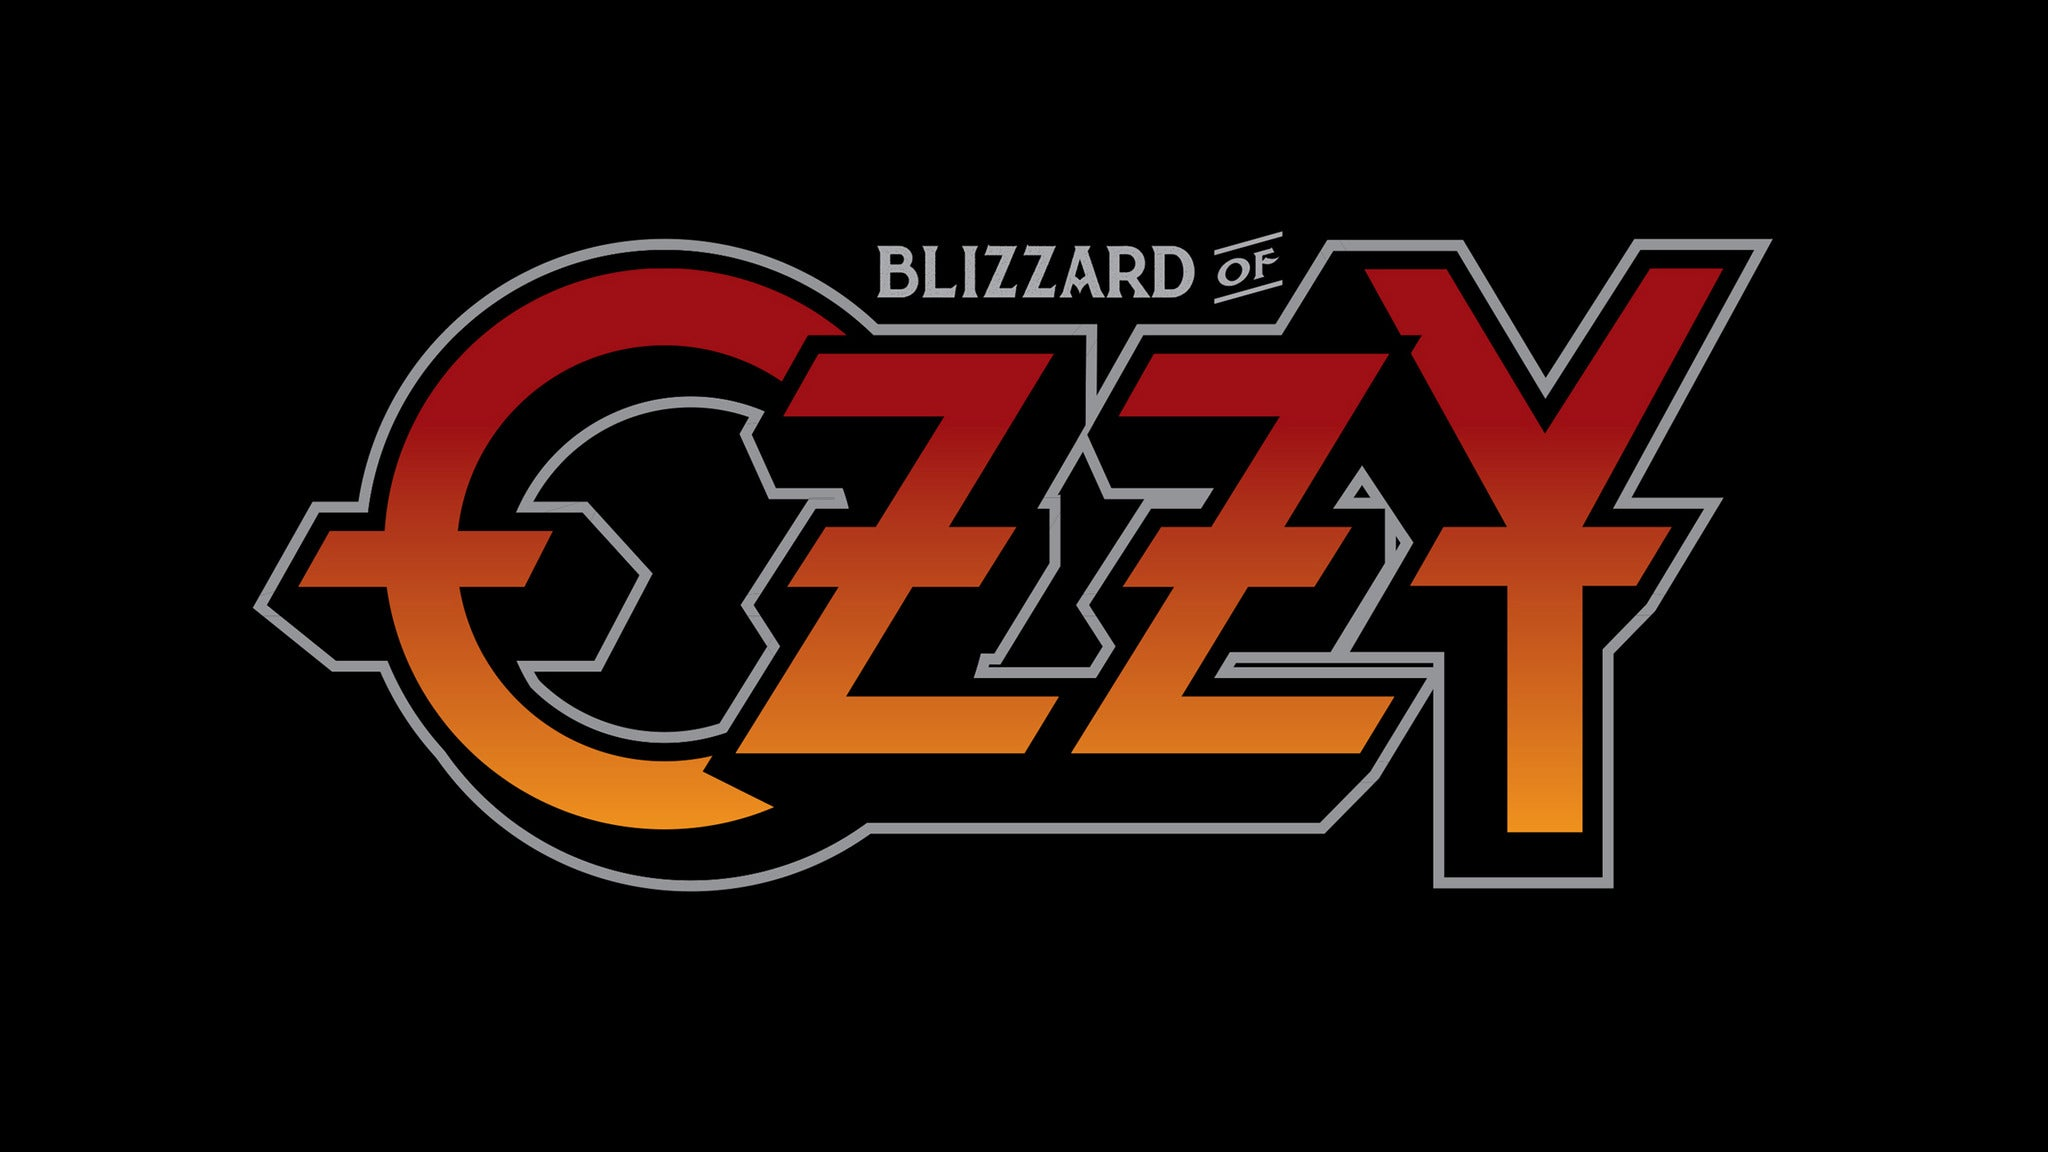 Blizzard of Ozzy - Ozzy Osbourne Tribute Band with Burnhouse